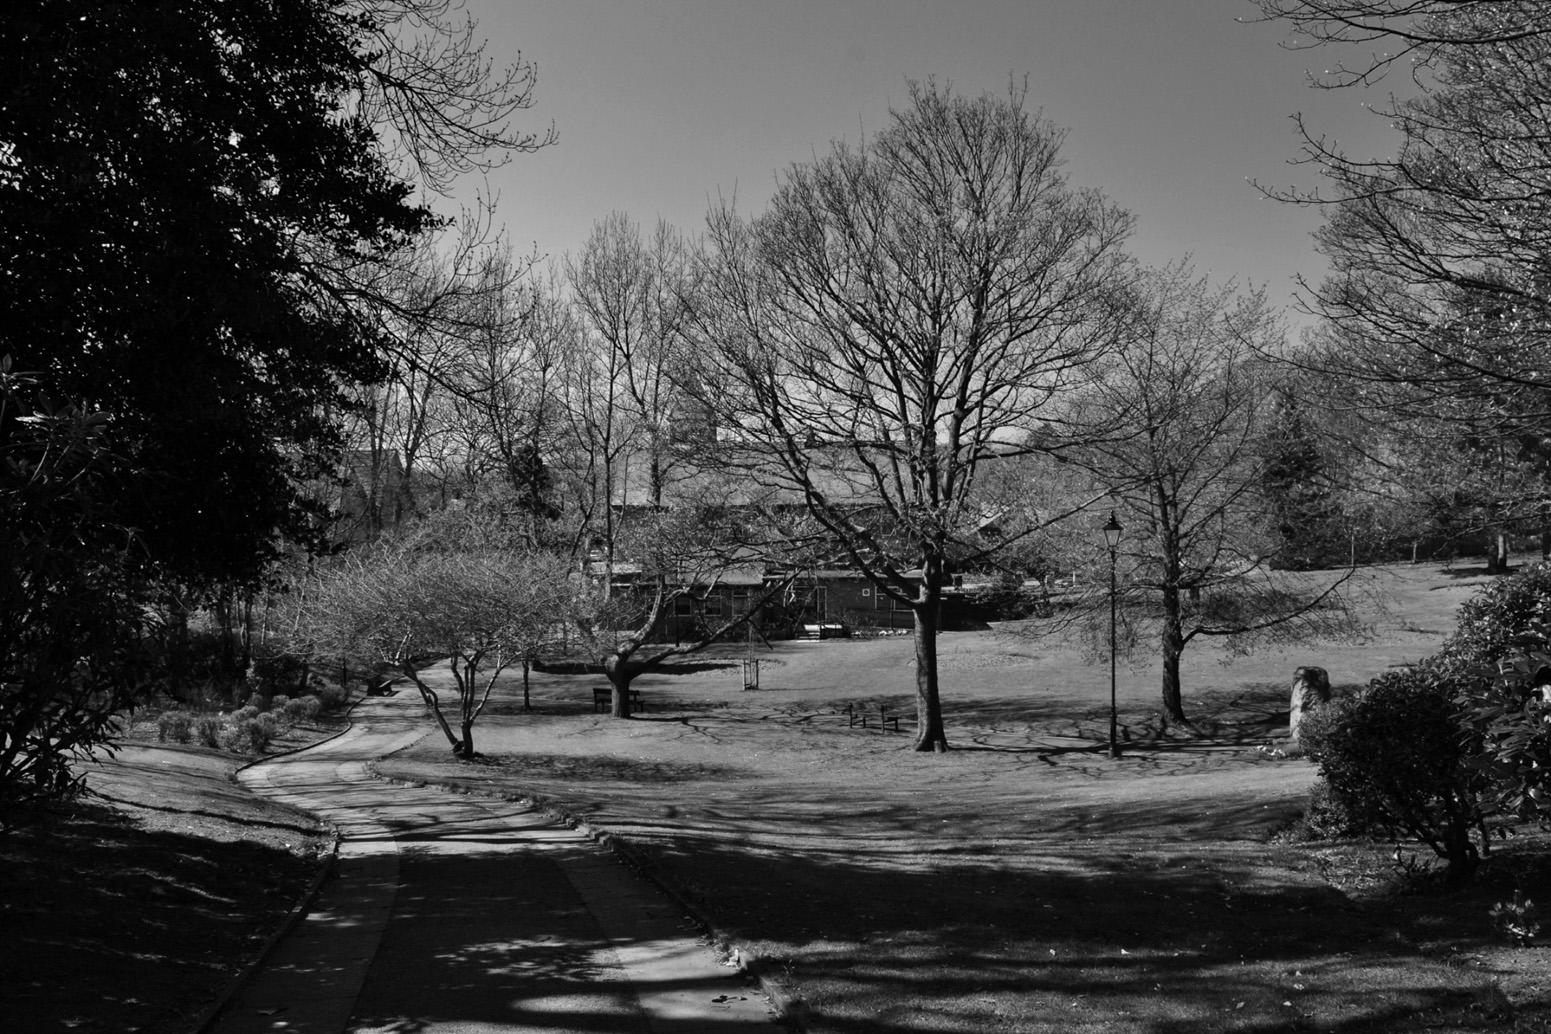 Jubilee Park in Black & White